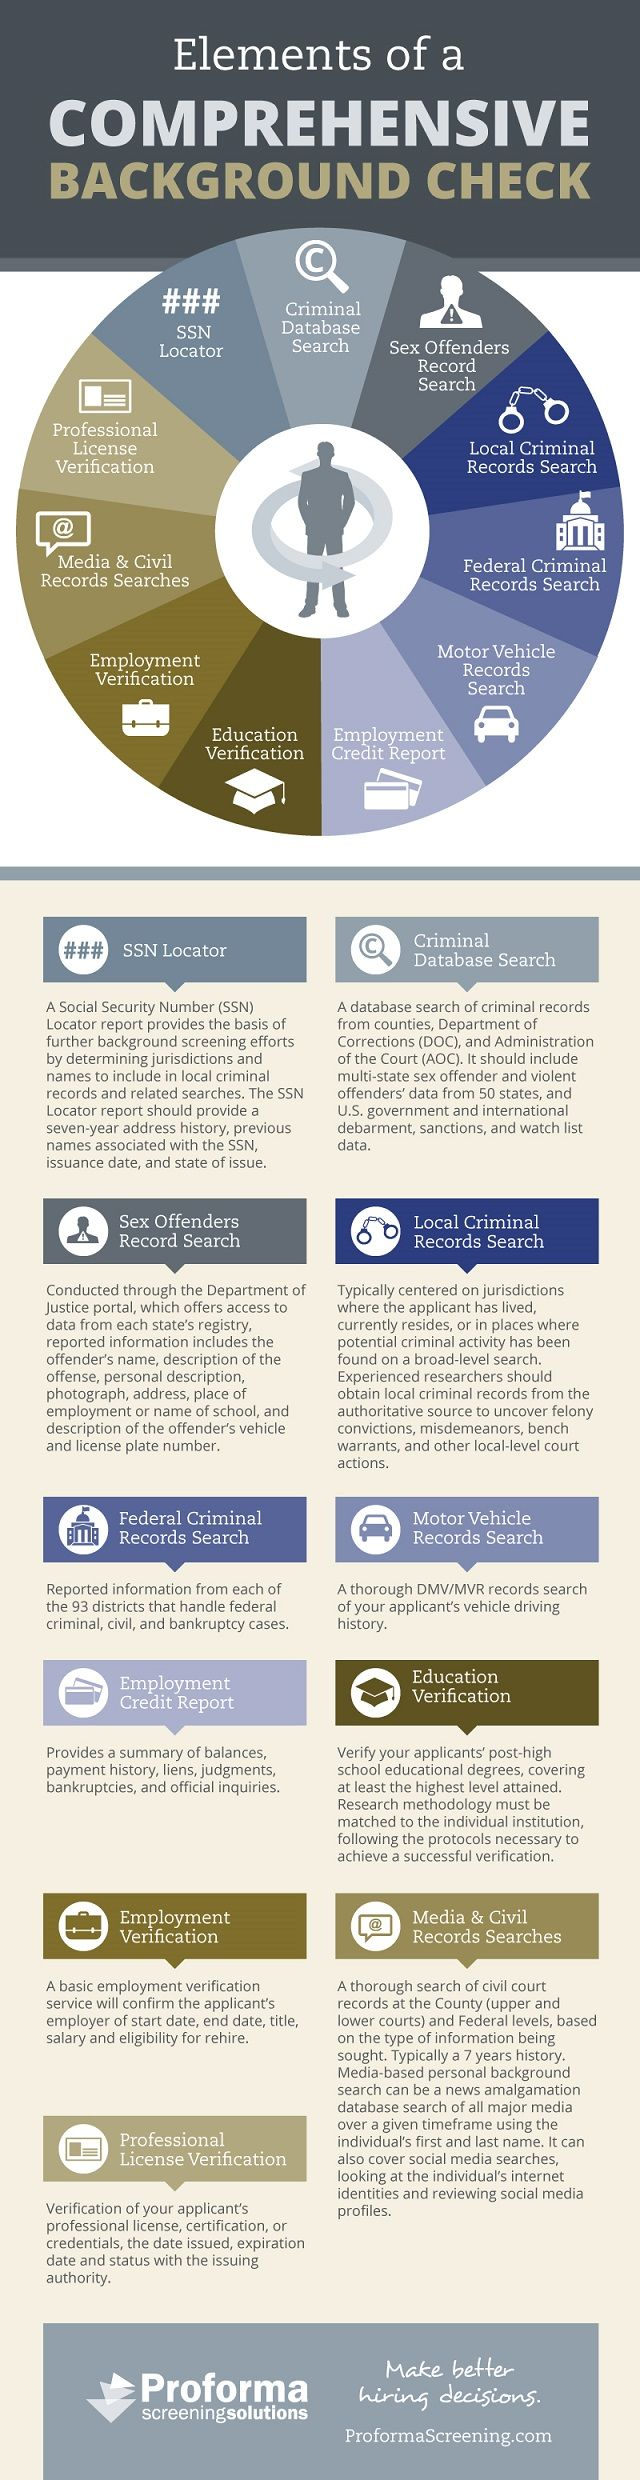 Elements Of A Comprehensive Background Check Infographic Background Check Infographic Free Background Check